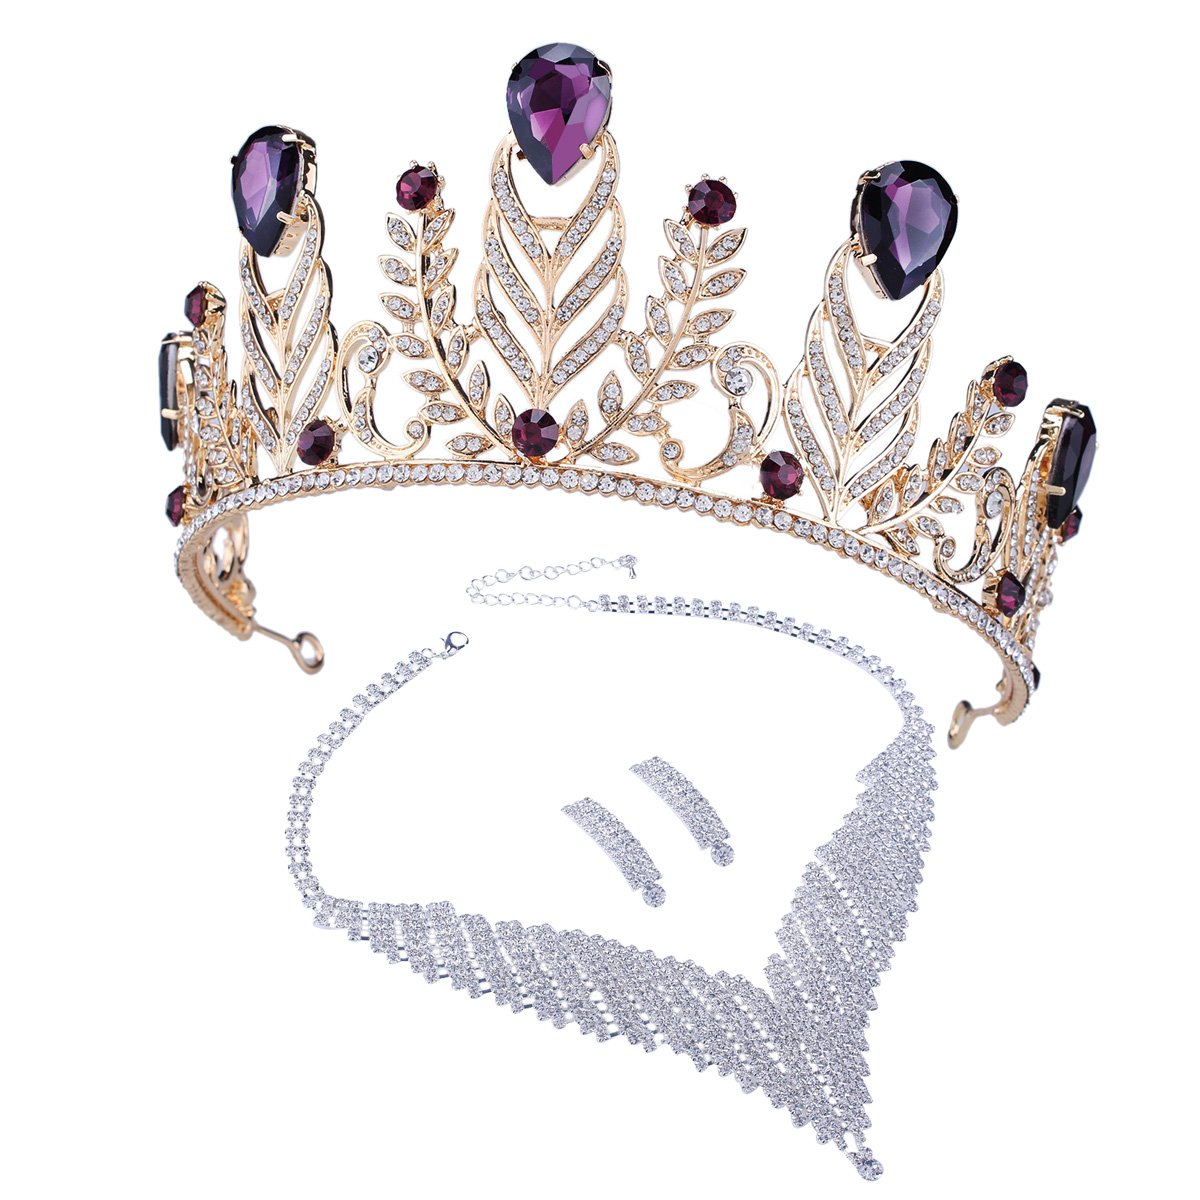 Santfe Elgant Purple Crystal Stone Leaf Style Wedding Party Headband Hair Band Tiara Crown, Come with Earrings or Necklace (Style 10)